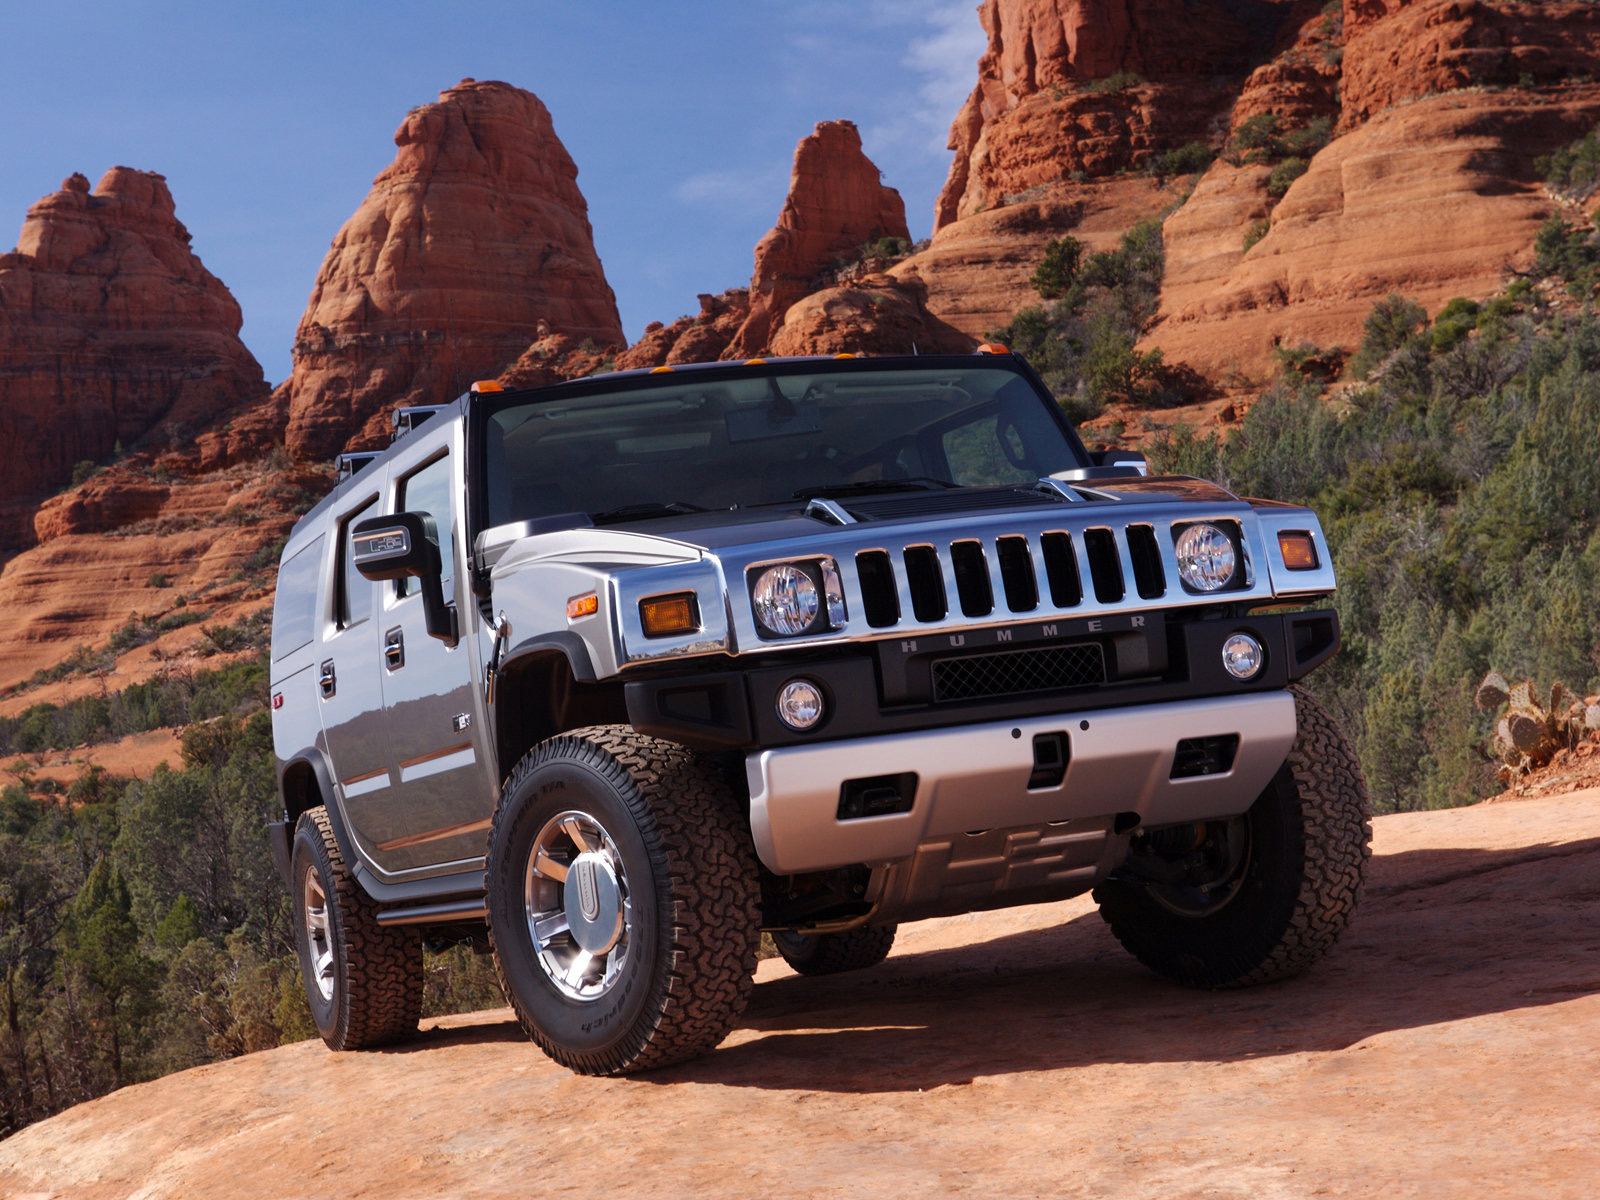 2008 Hummer H2 Truck Image collections Cars Wallpaper Free